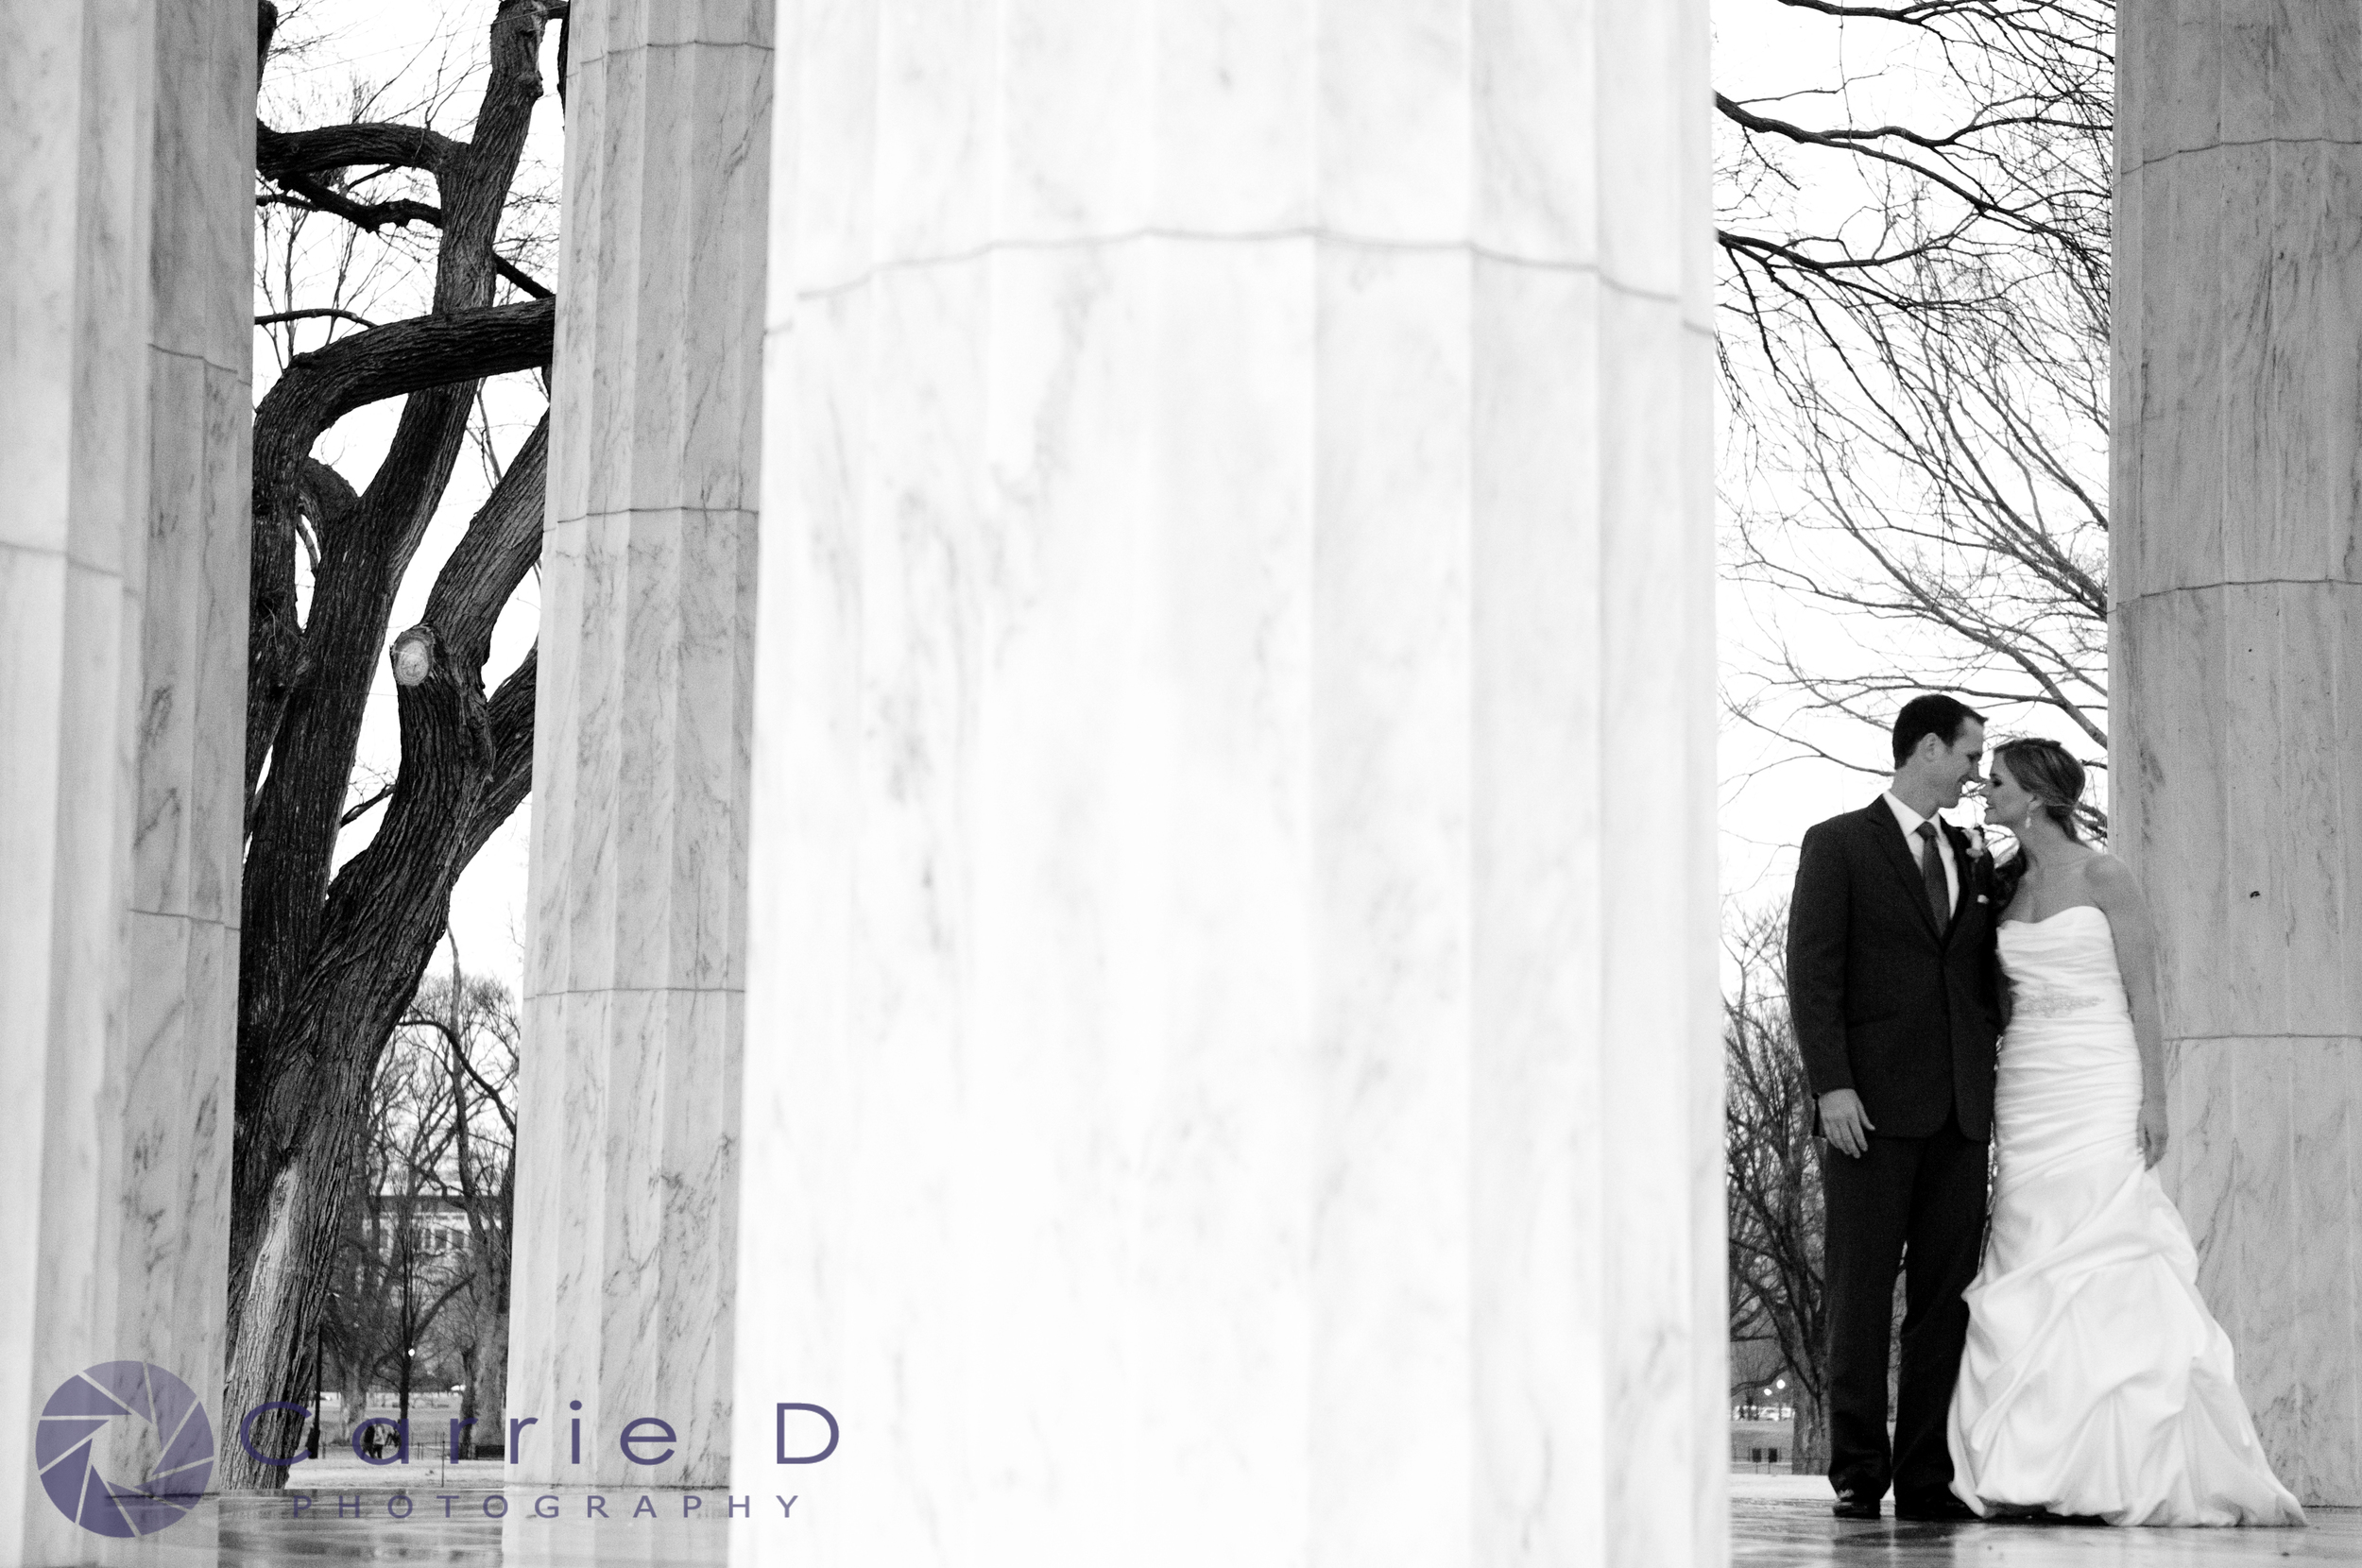 Wedding Photography by Washington Monuments - Washington DC Wedding Photographer - Washington DC Natural Light Wedding Photographer - Washington DC Photographer - Wedding Portraits at the Washington Monuments - Natural Light Photography - Natural Light Photographer - Wedding Photography Washington DC - Top of the Town Arlington Wedding Photographer - Top of the Town Photographer